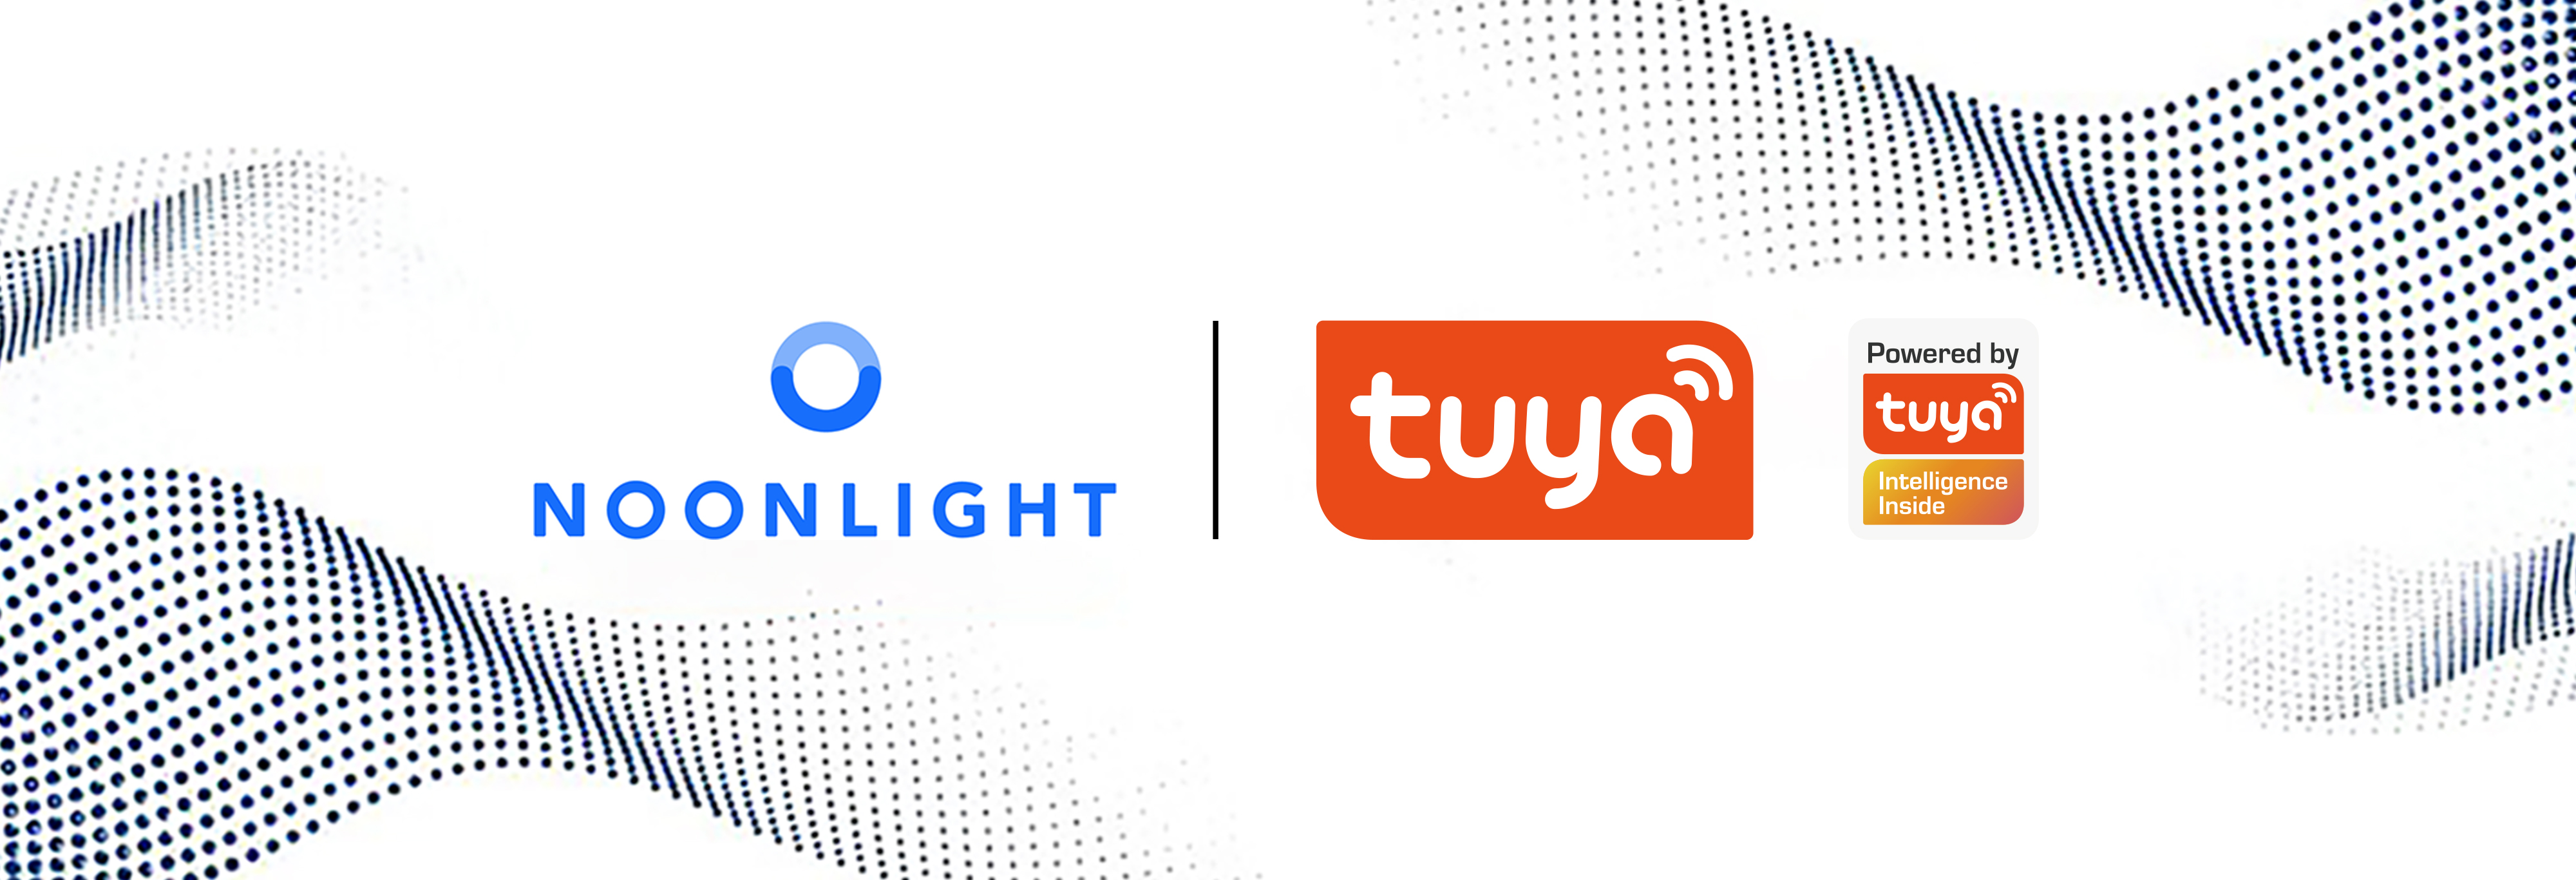 Tuya Smart and Noonlight Announce Partnership Signaling a New Era of Personal and Home Security